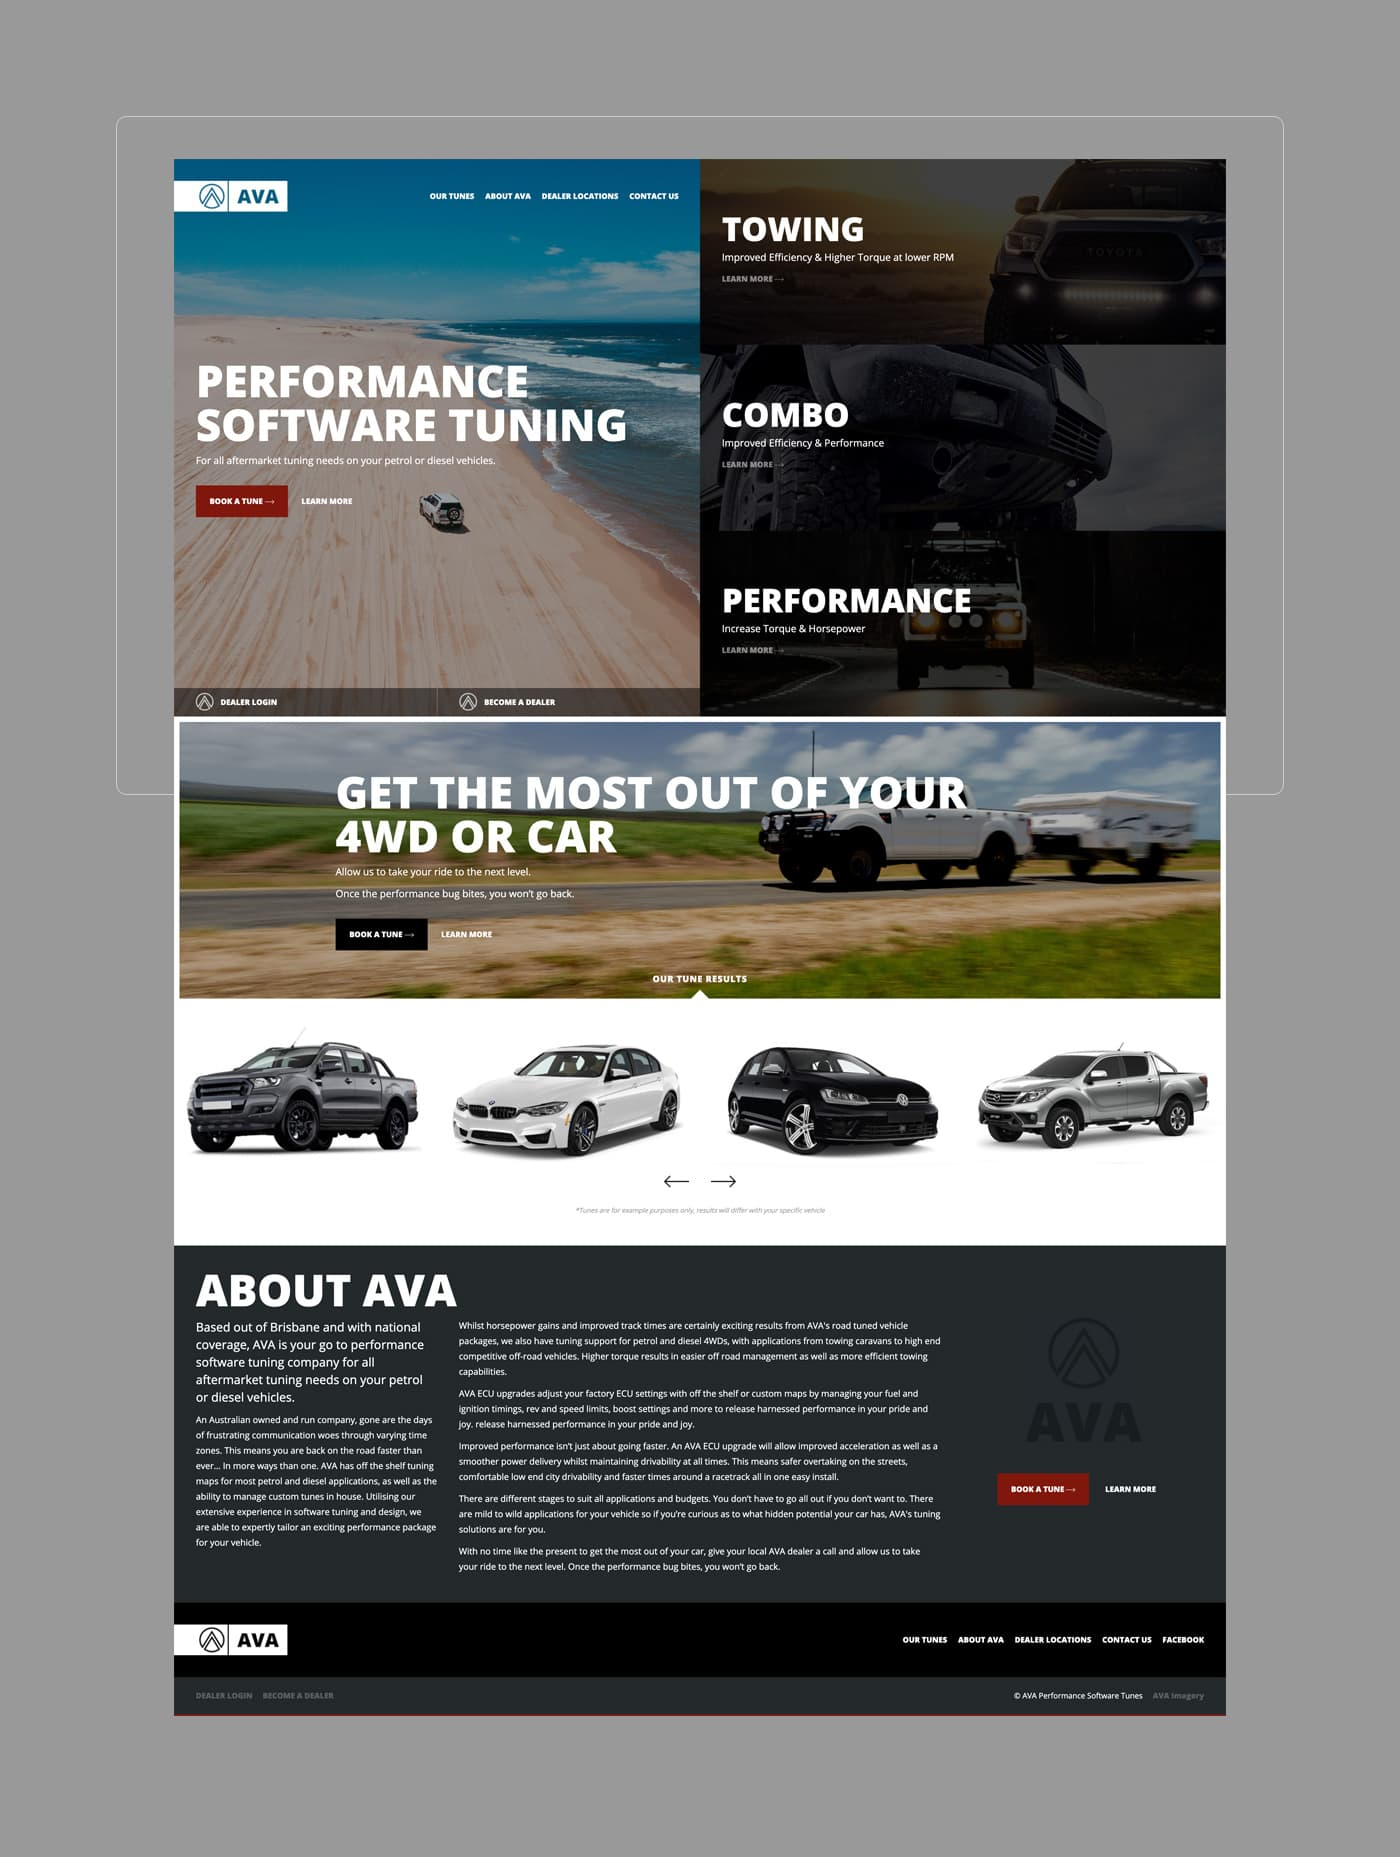 AVA Performance Software Tuning - Homepage